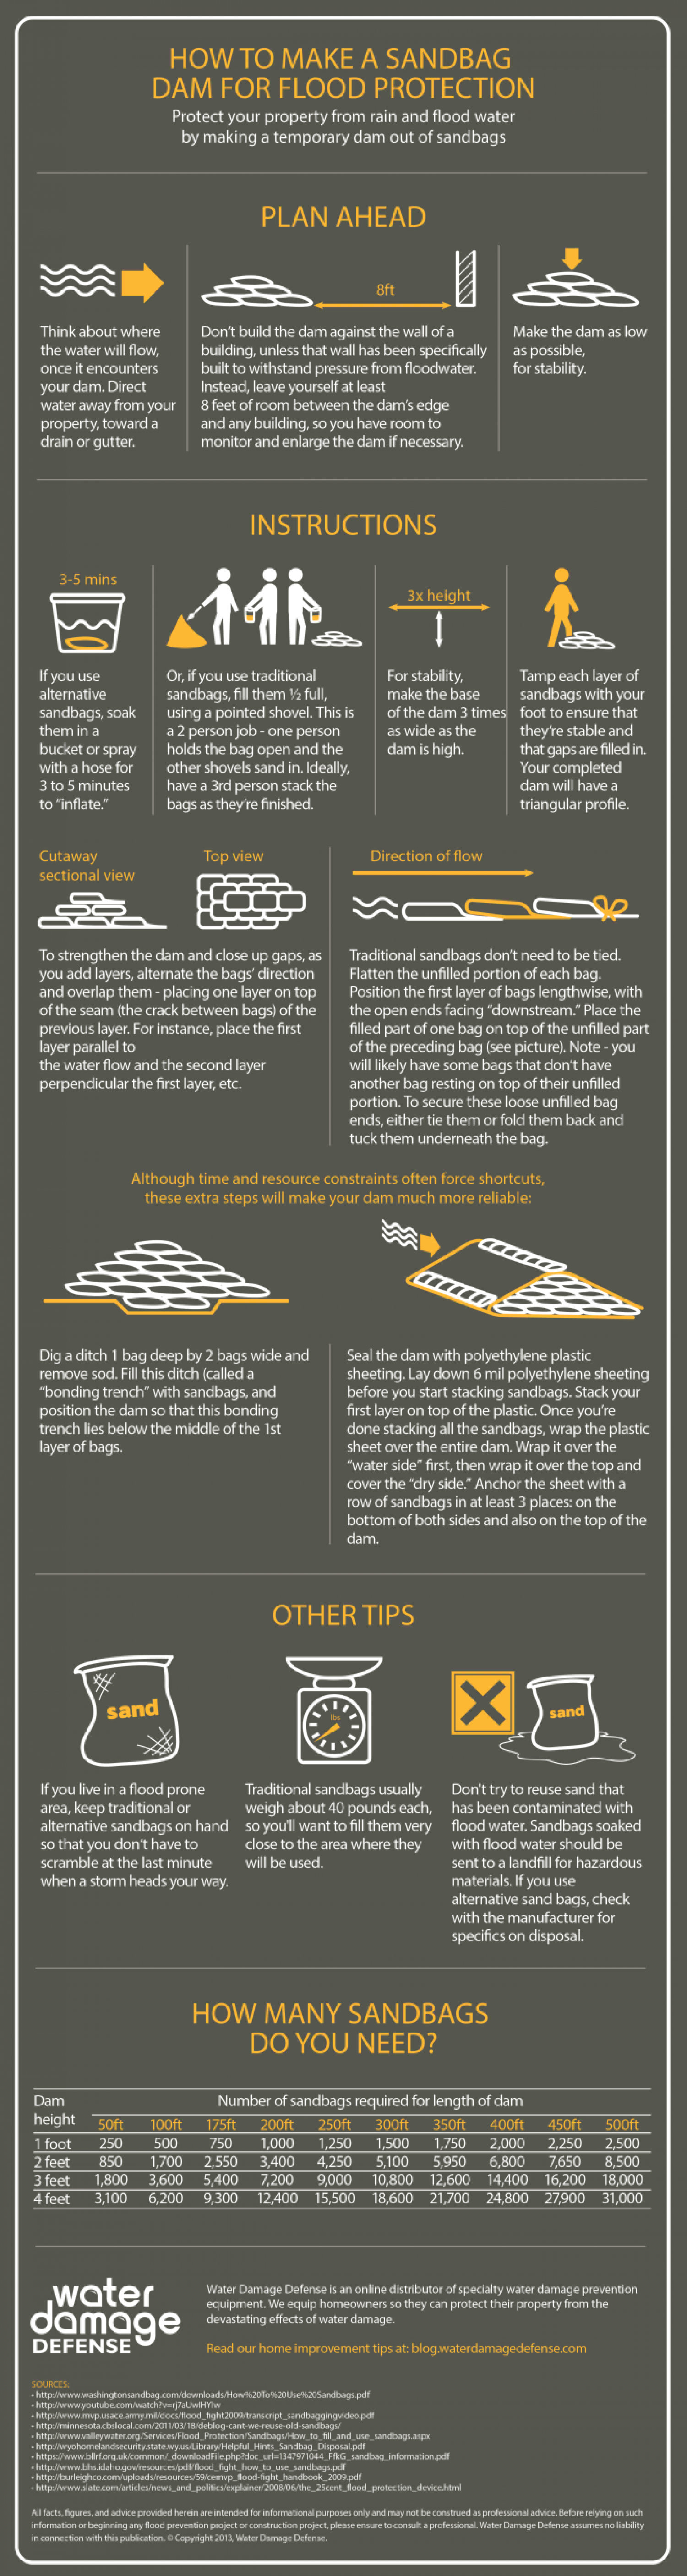 How to Make a Sandbag Dam For Flood Protection Infographic